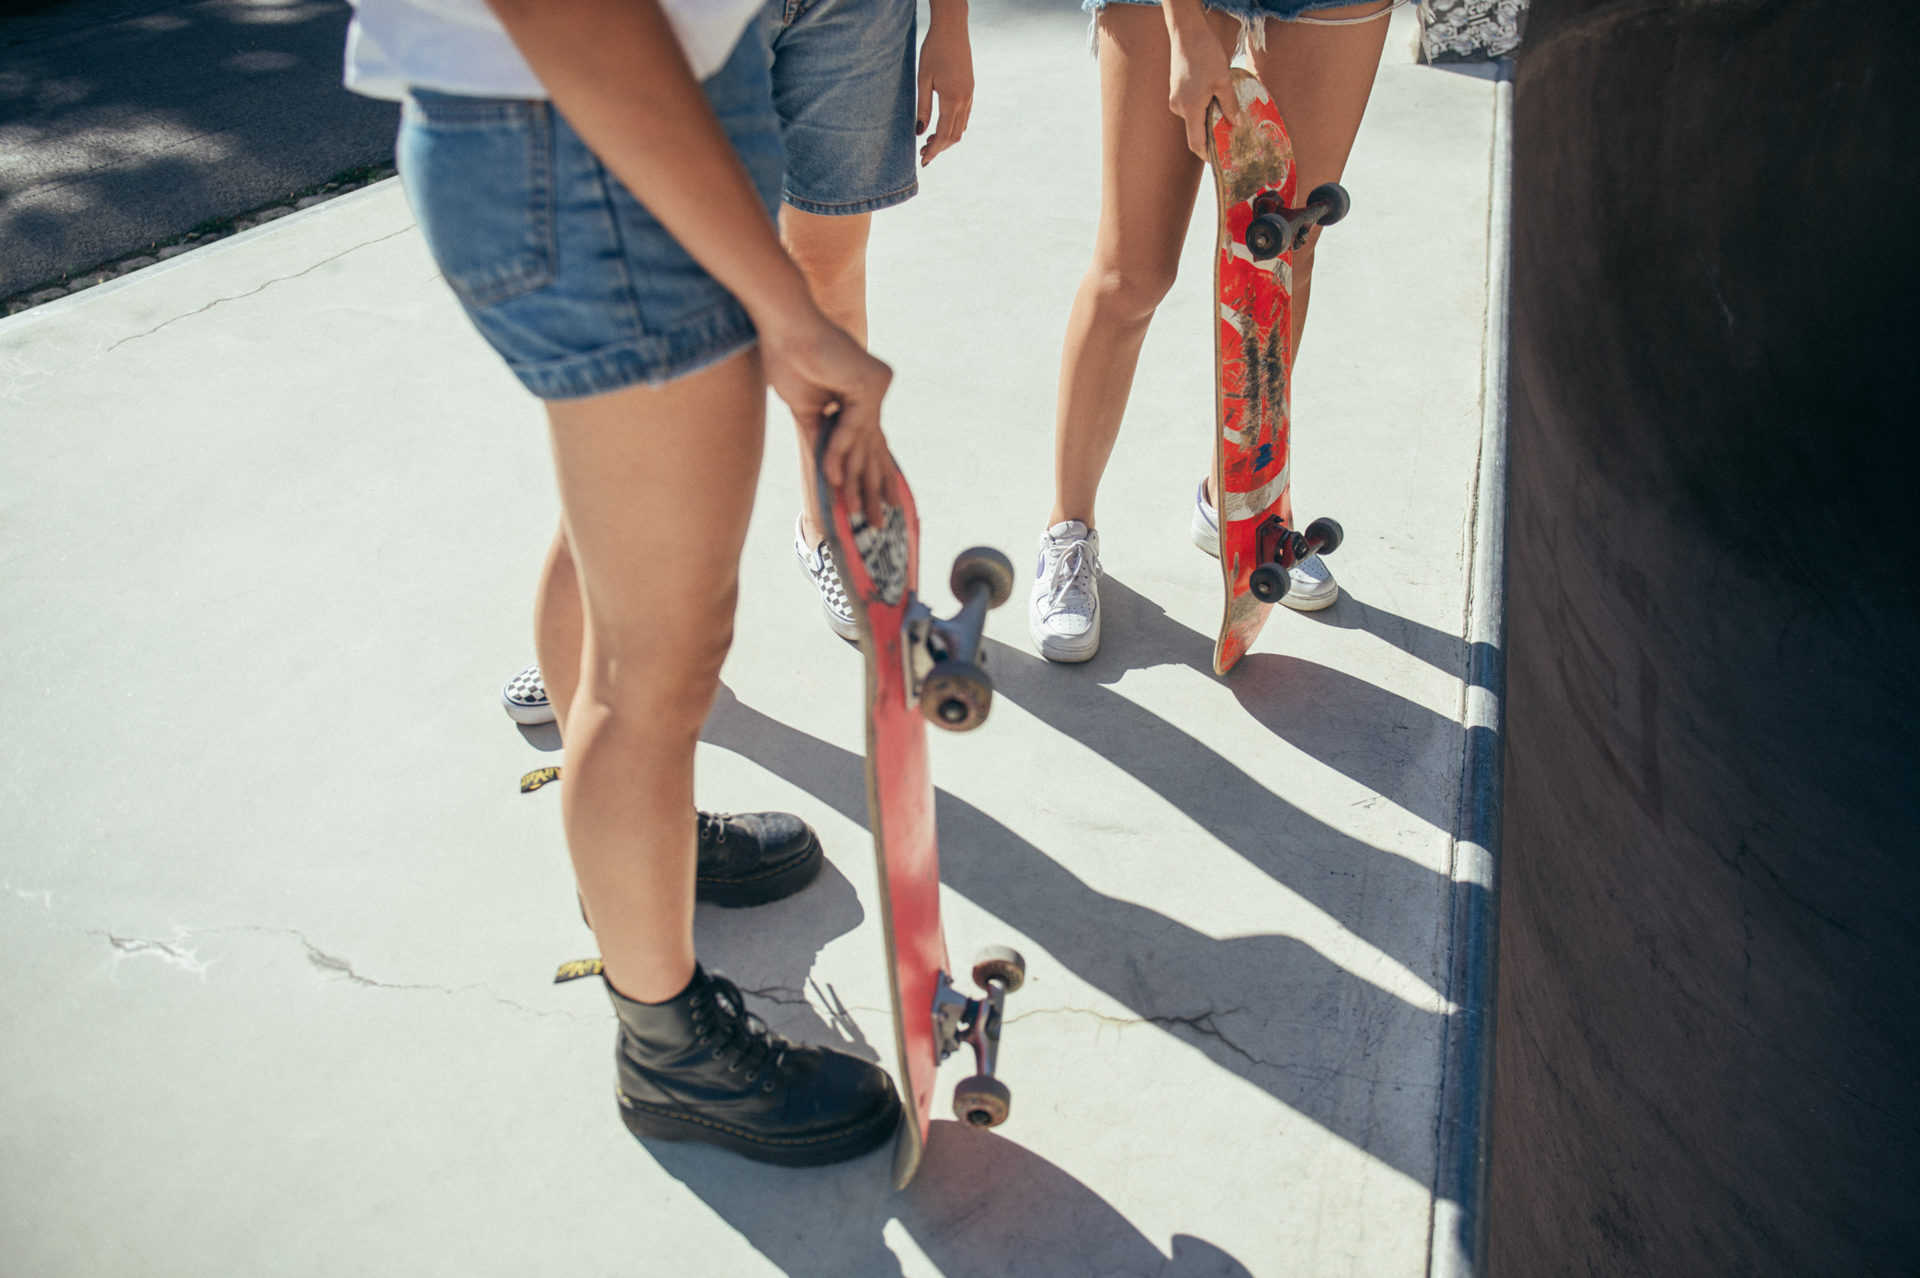 Skatepark CocaCola by Sarah Aubel